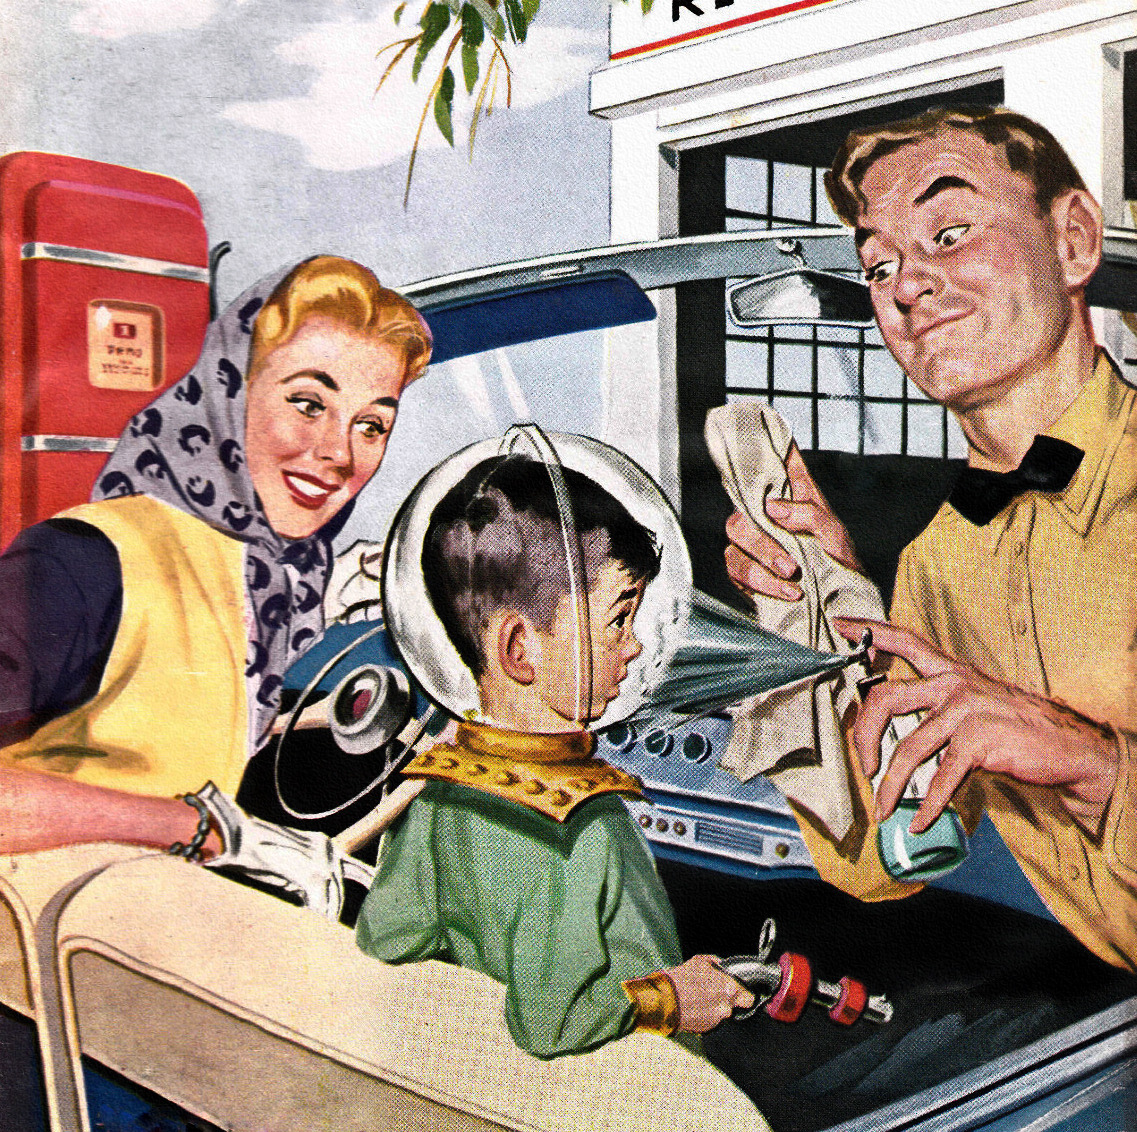 theniftyfifties:  'Full Service' - detail from Motor Magazine cover, May 1955.